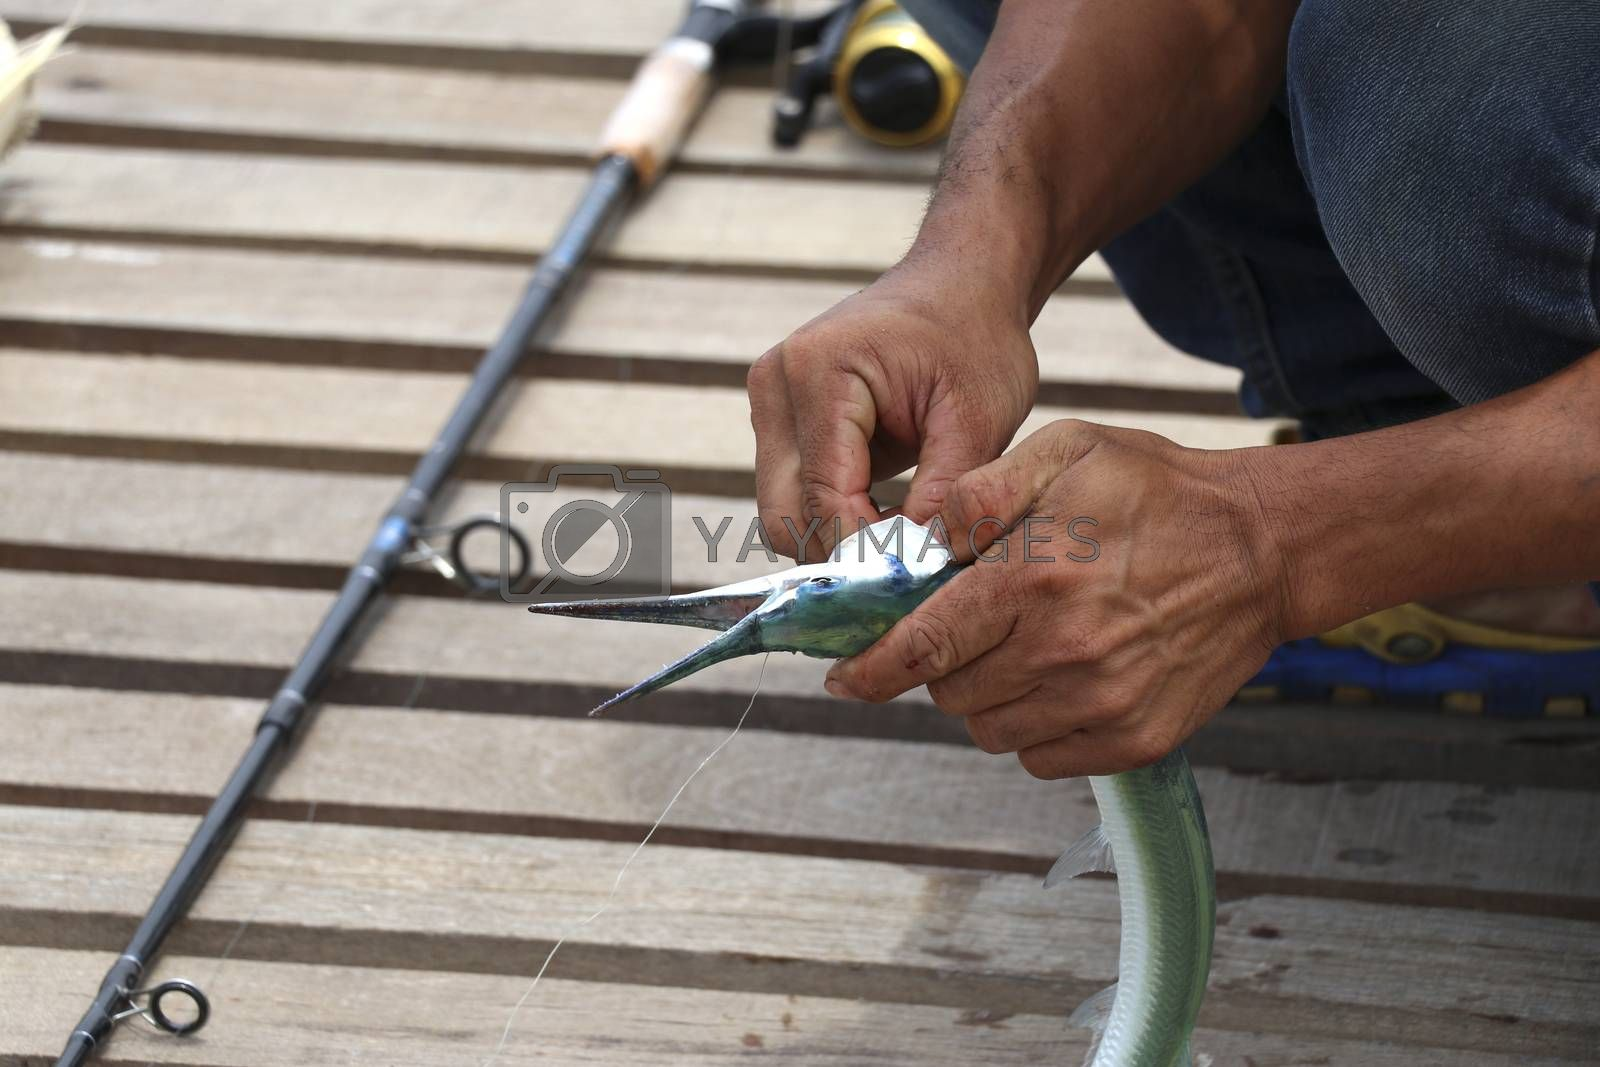 Fishermen are removing the hook from the fish. Fishermen are fishing.